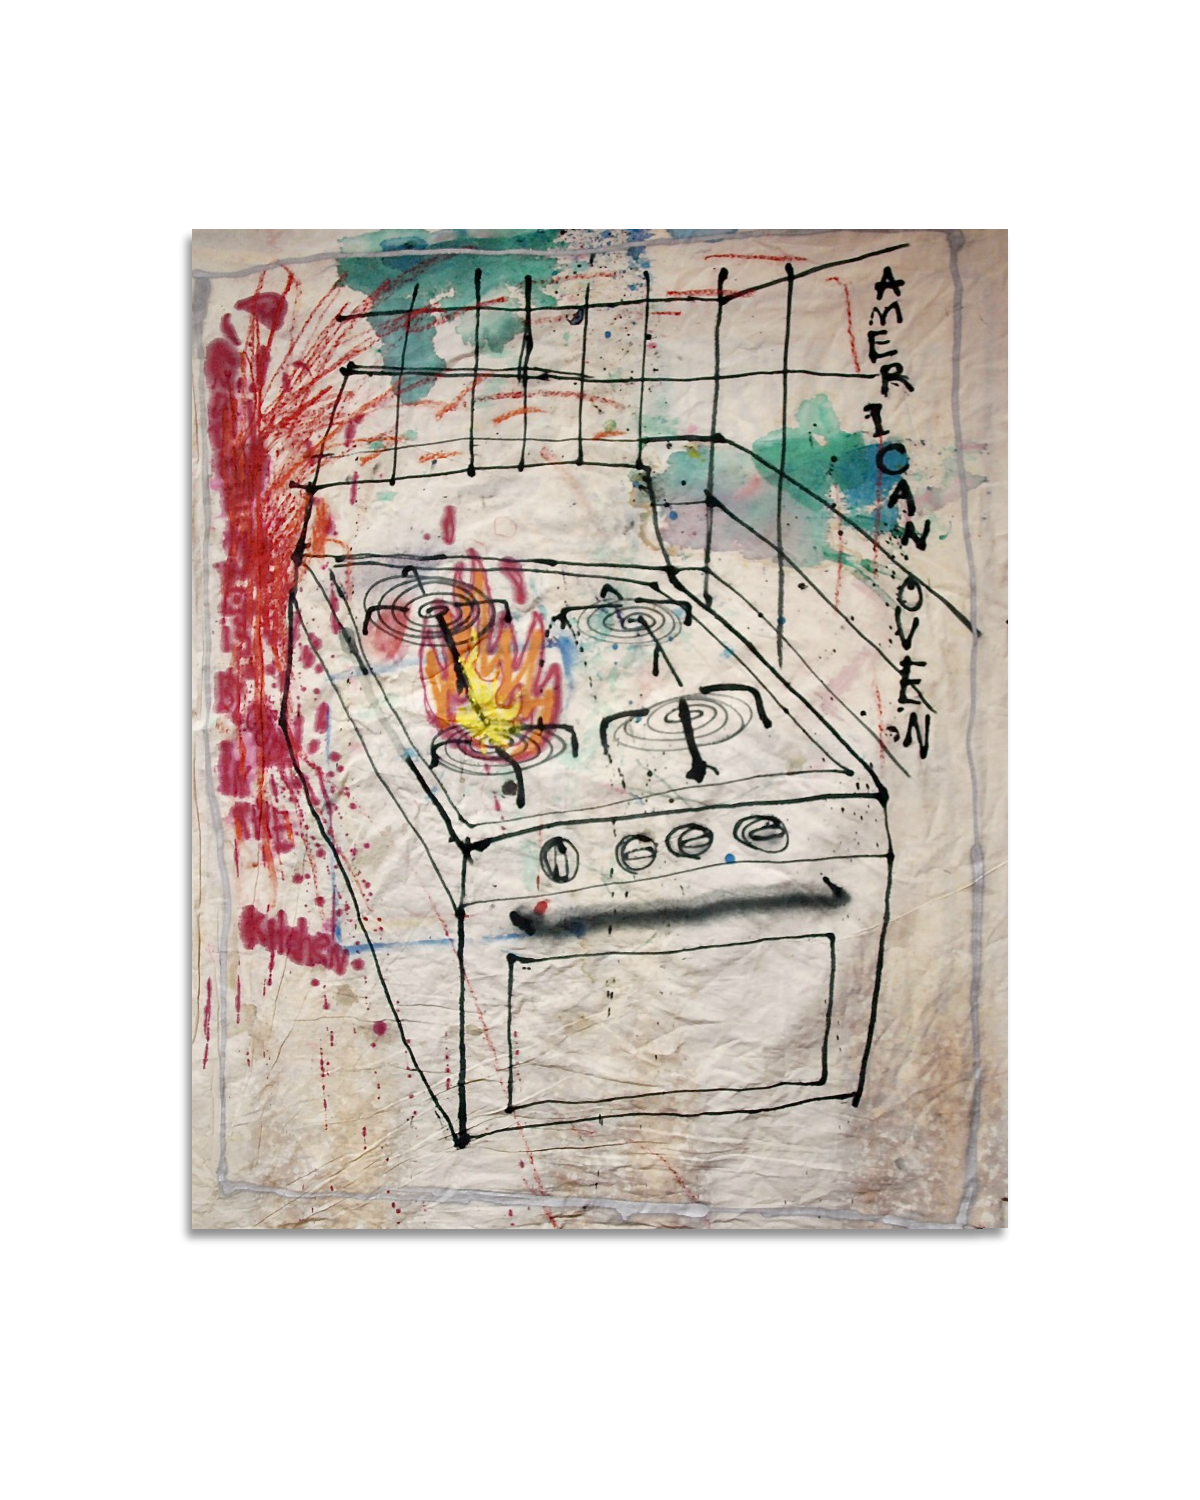 """American oven (and there is blood in the kitchen)"" 2018"